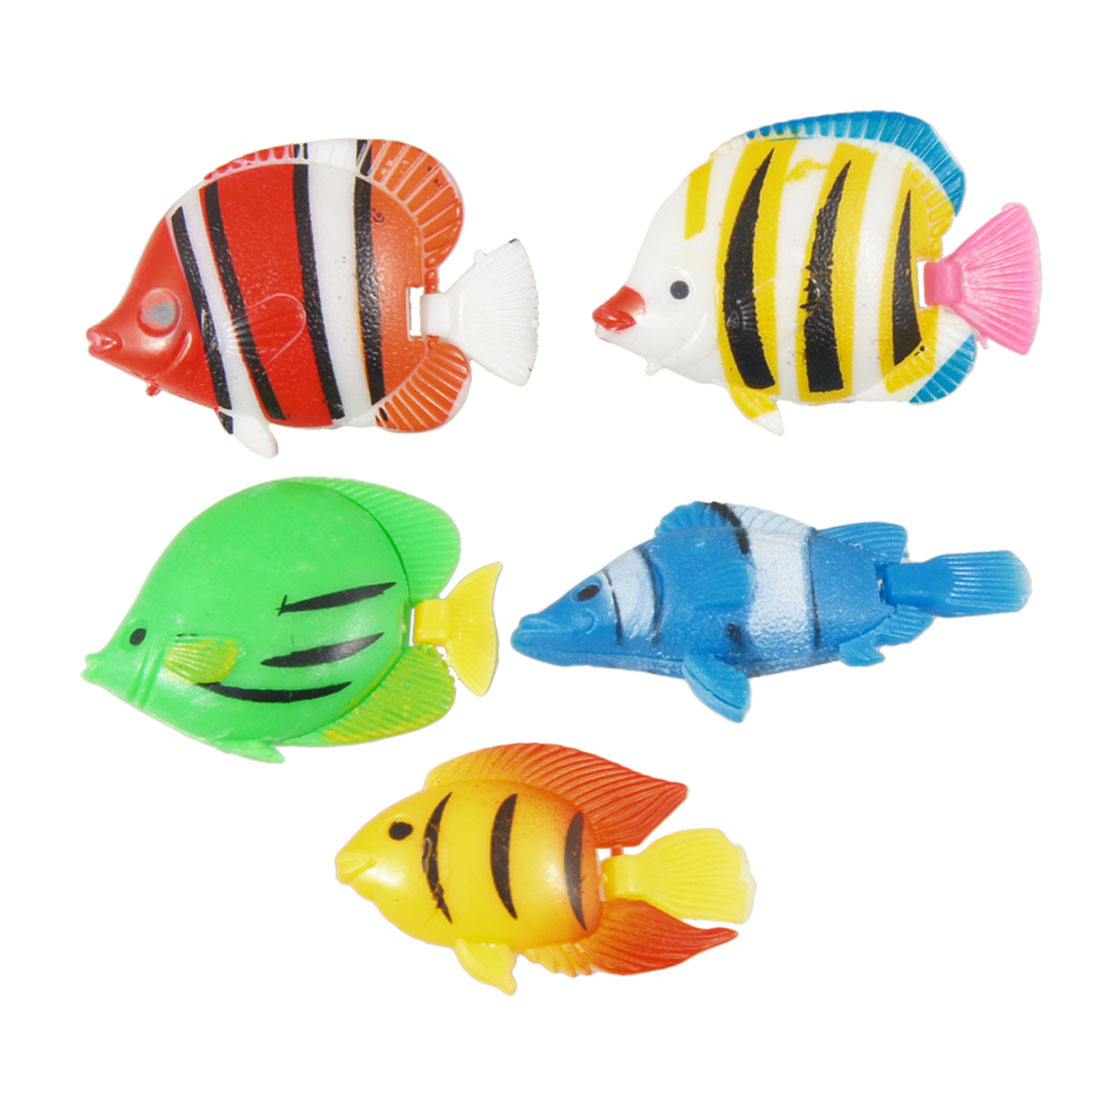 5 Pcs Simulated Plastic Striped Tropical Fishes Ornament for Fish Aquarium